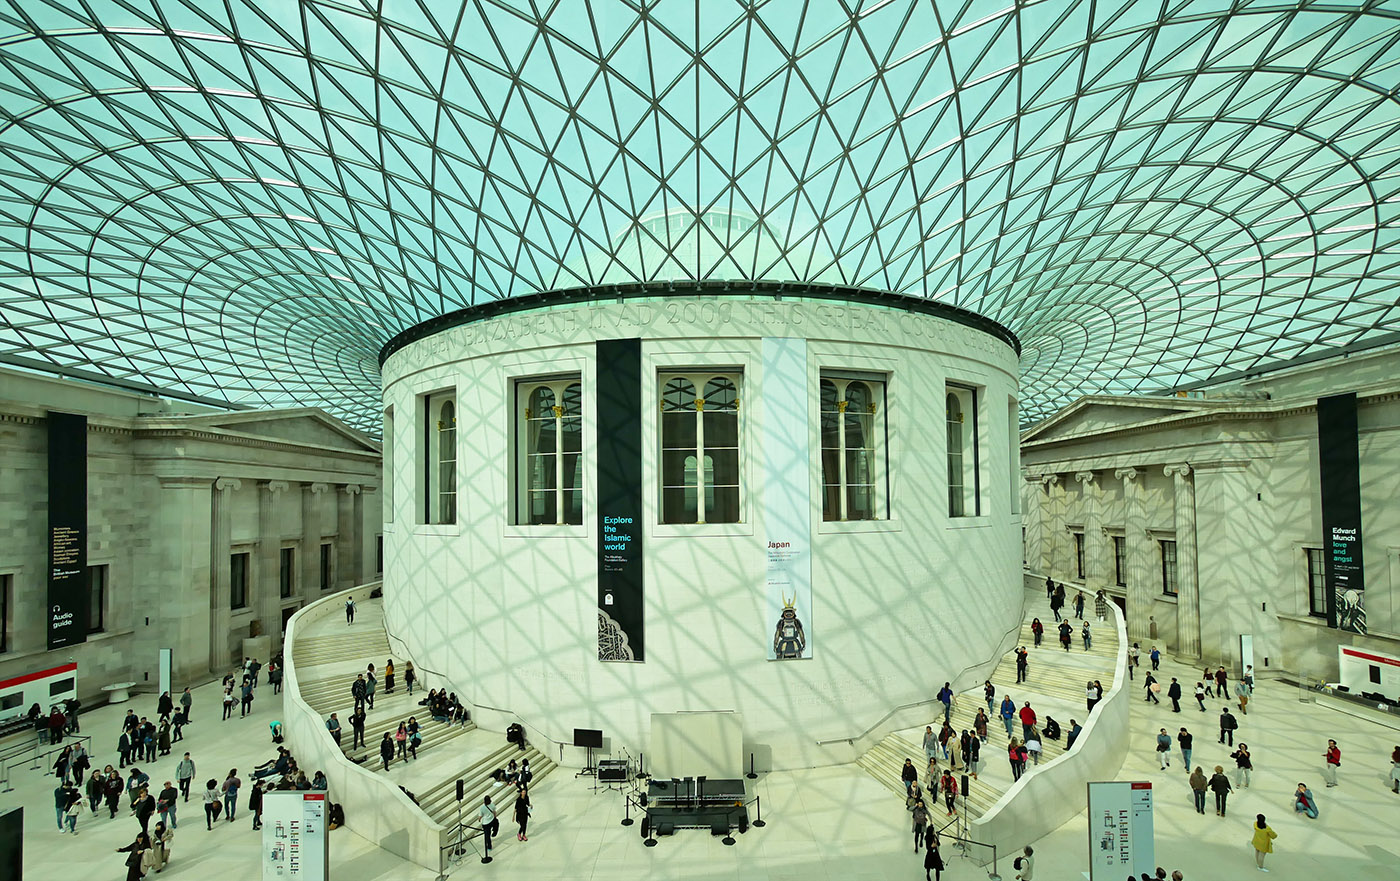 The British Museum - Inner courtyard designed by Norman Foster